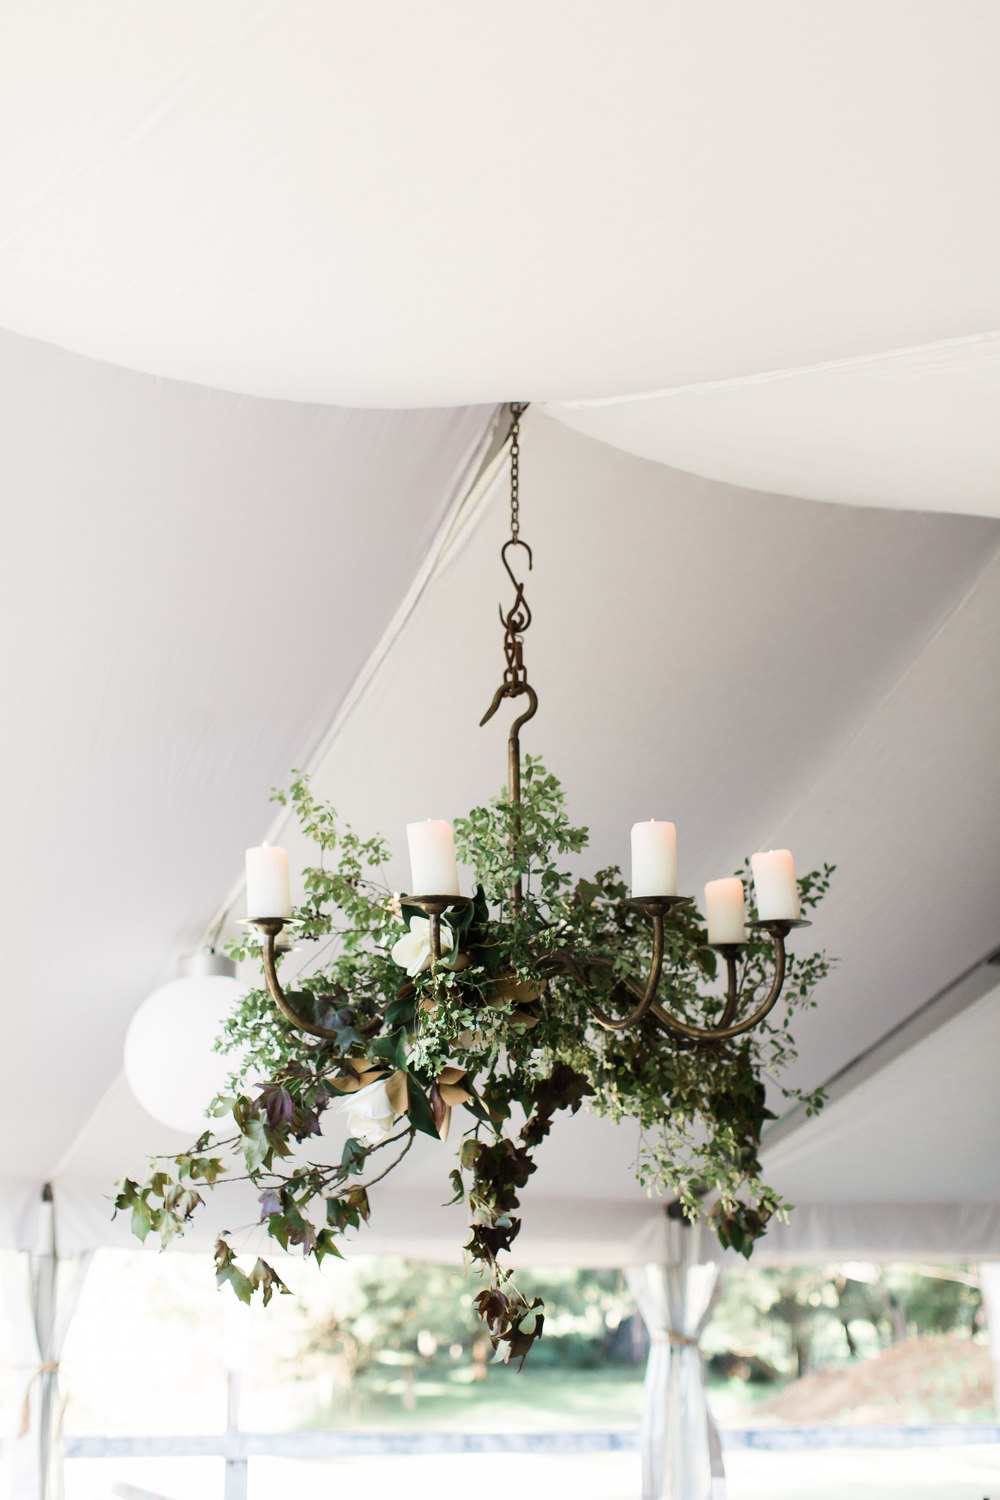 The marquee's existing iron chandeliers simply dressed with Autumn foliage and pittostrom.